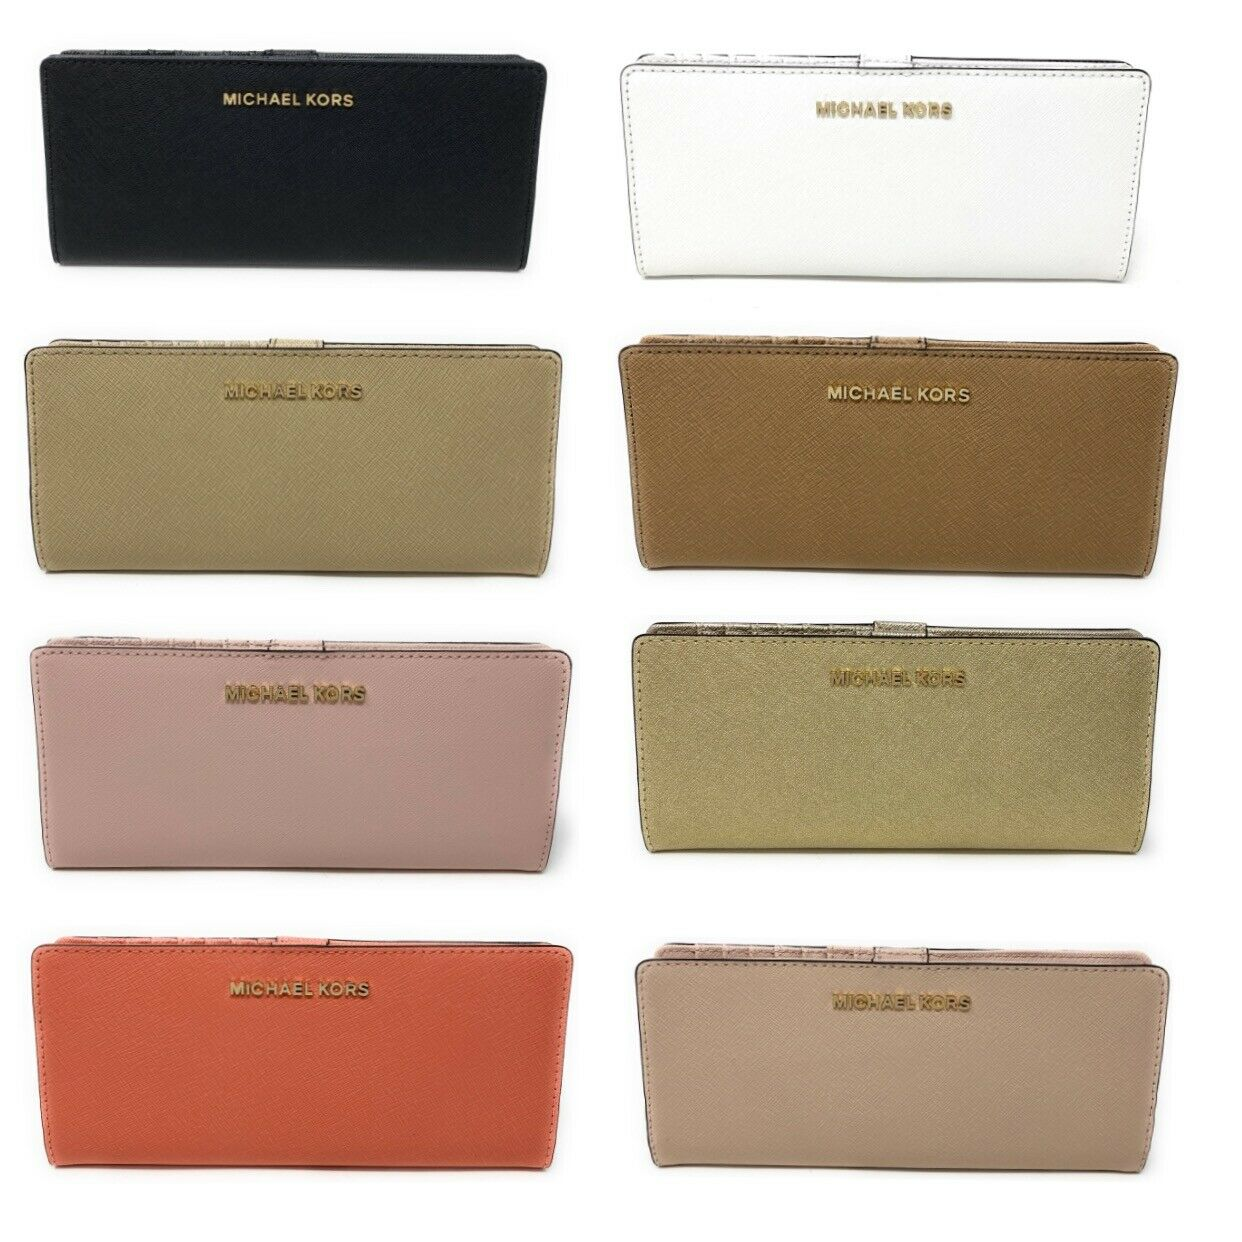 Michael Kors Jet Set Travel Flat Slim Bifold Saffiano Leather Wallet $148 Clothing, Shoes & Accessories